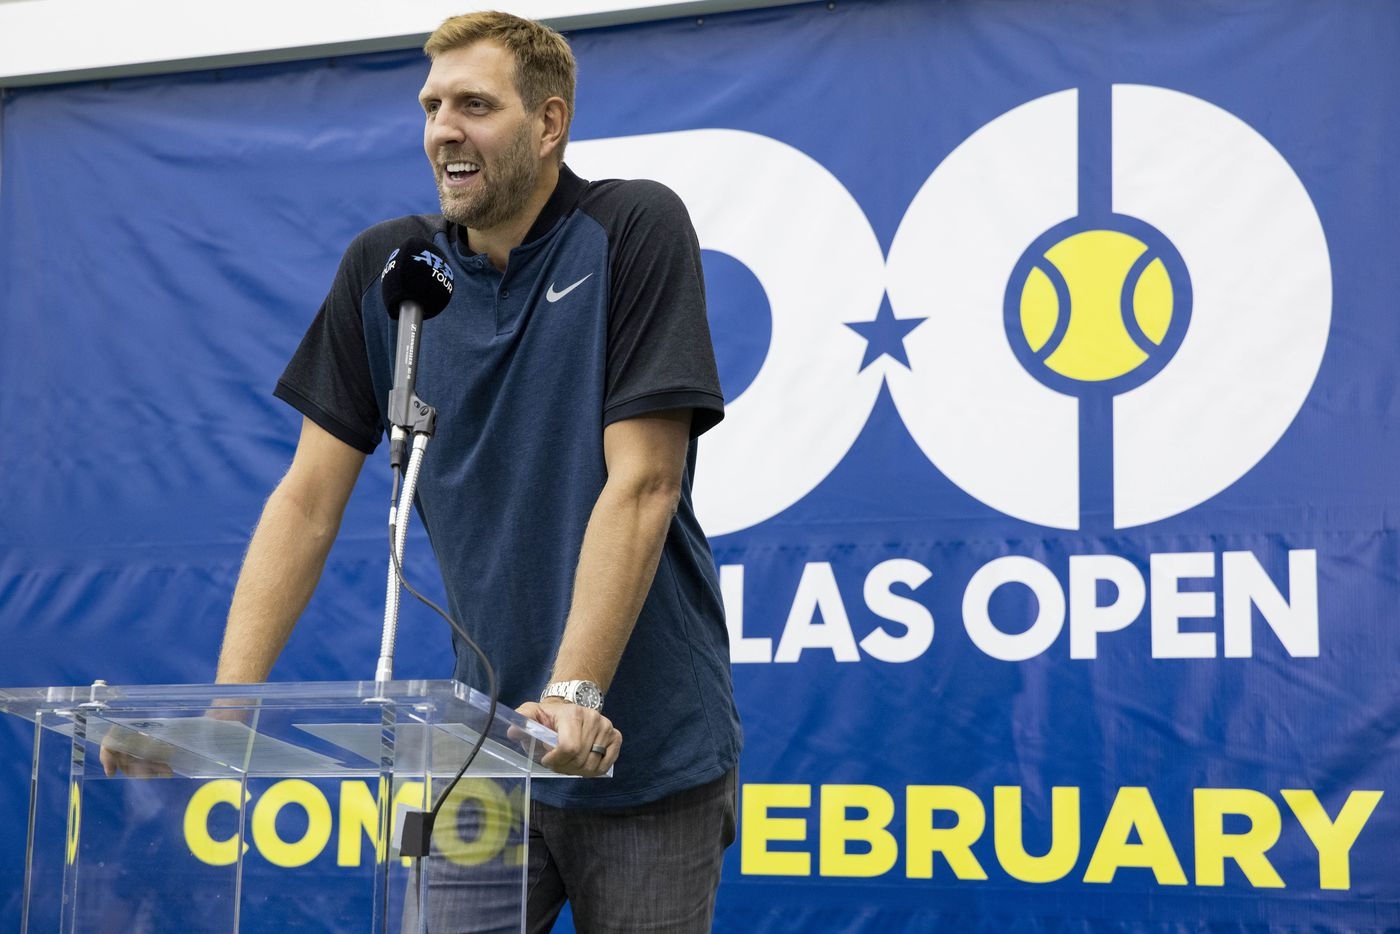 Dallas Mavericks star Dirk Nowitzki speaks during a press conference to announce a new ATP tennis tour event coming to Dallas at the SMU Styslinger/Altec Tennis Complex on Wednesday, May 19, 2021, in Dallas. (Juan Figueroa/The Dallas Morning News)